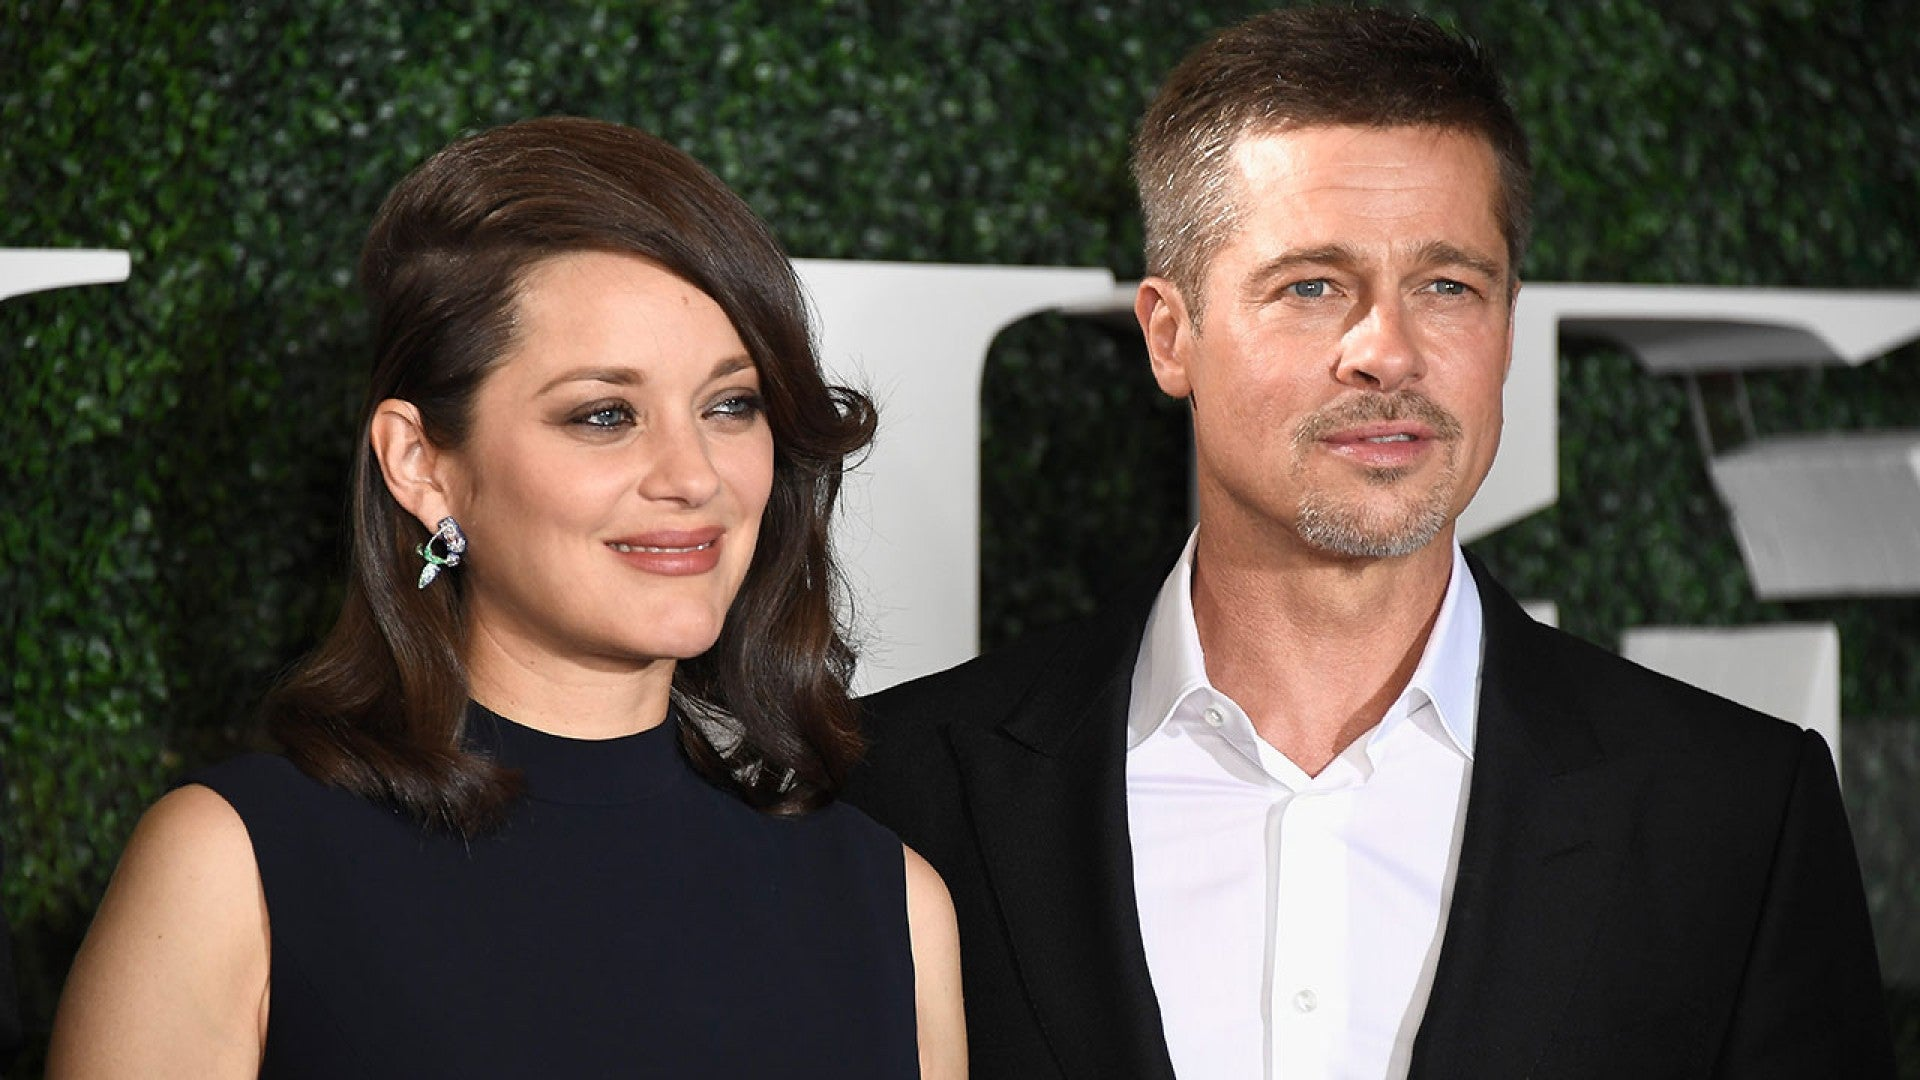 Exclusive Marion Cotillard On Meeting Brad Pitt While Filming